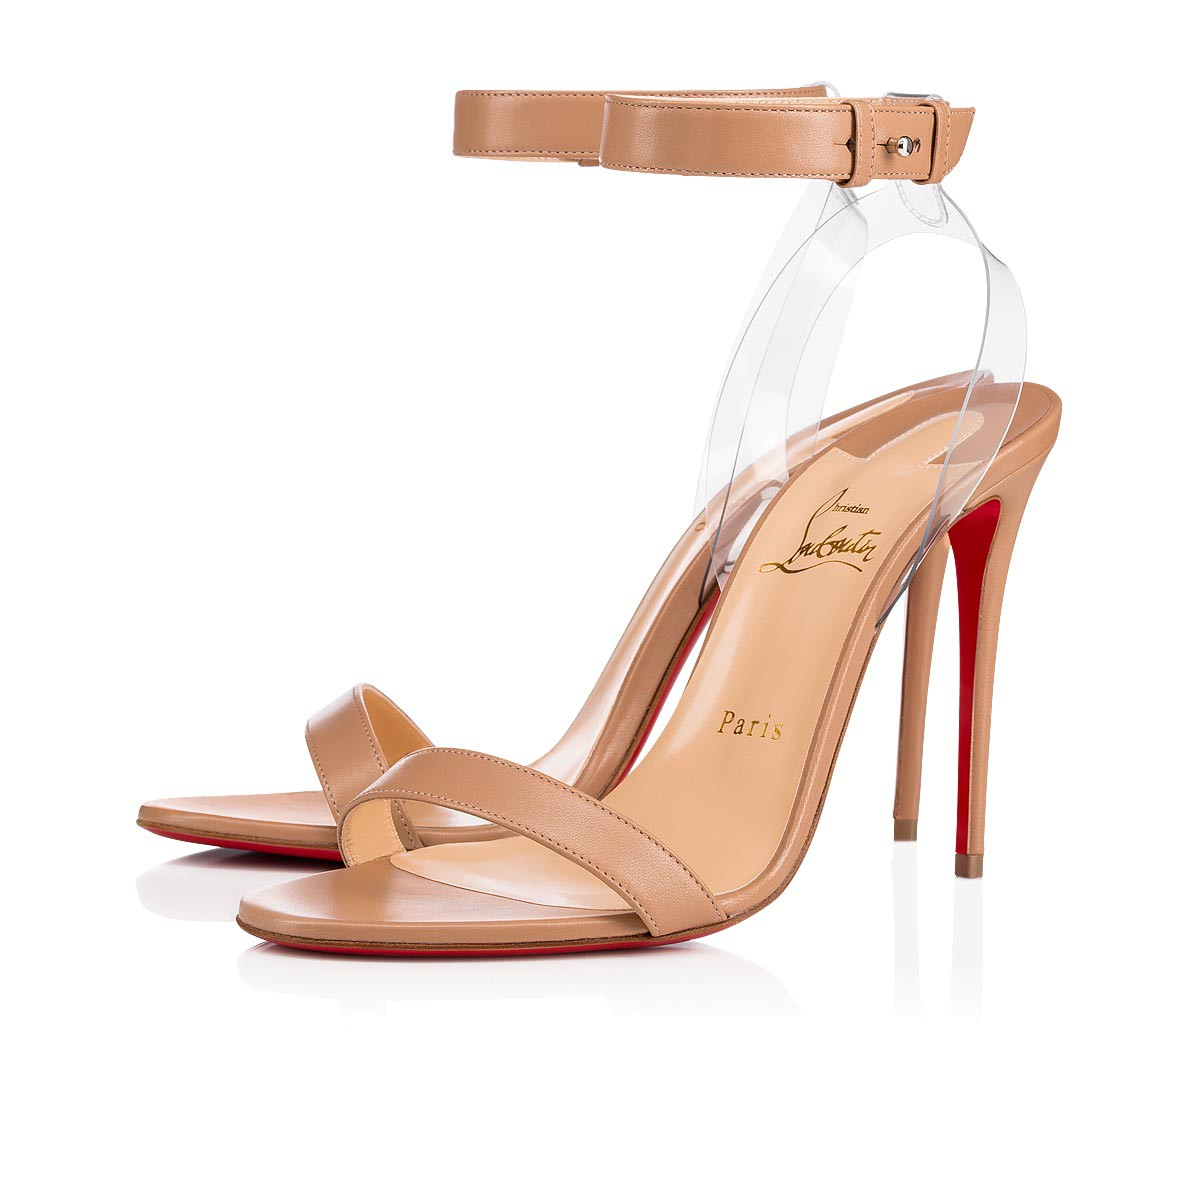 watch 9c9dd e219e Jonatina 100 Nude/Transp Leather - Women Shoes - Christian Louboutin